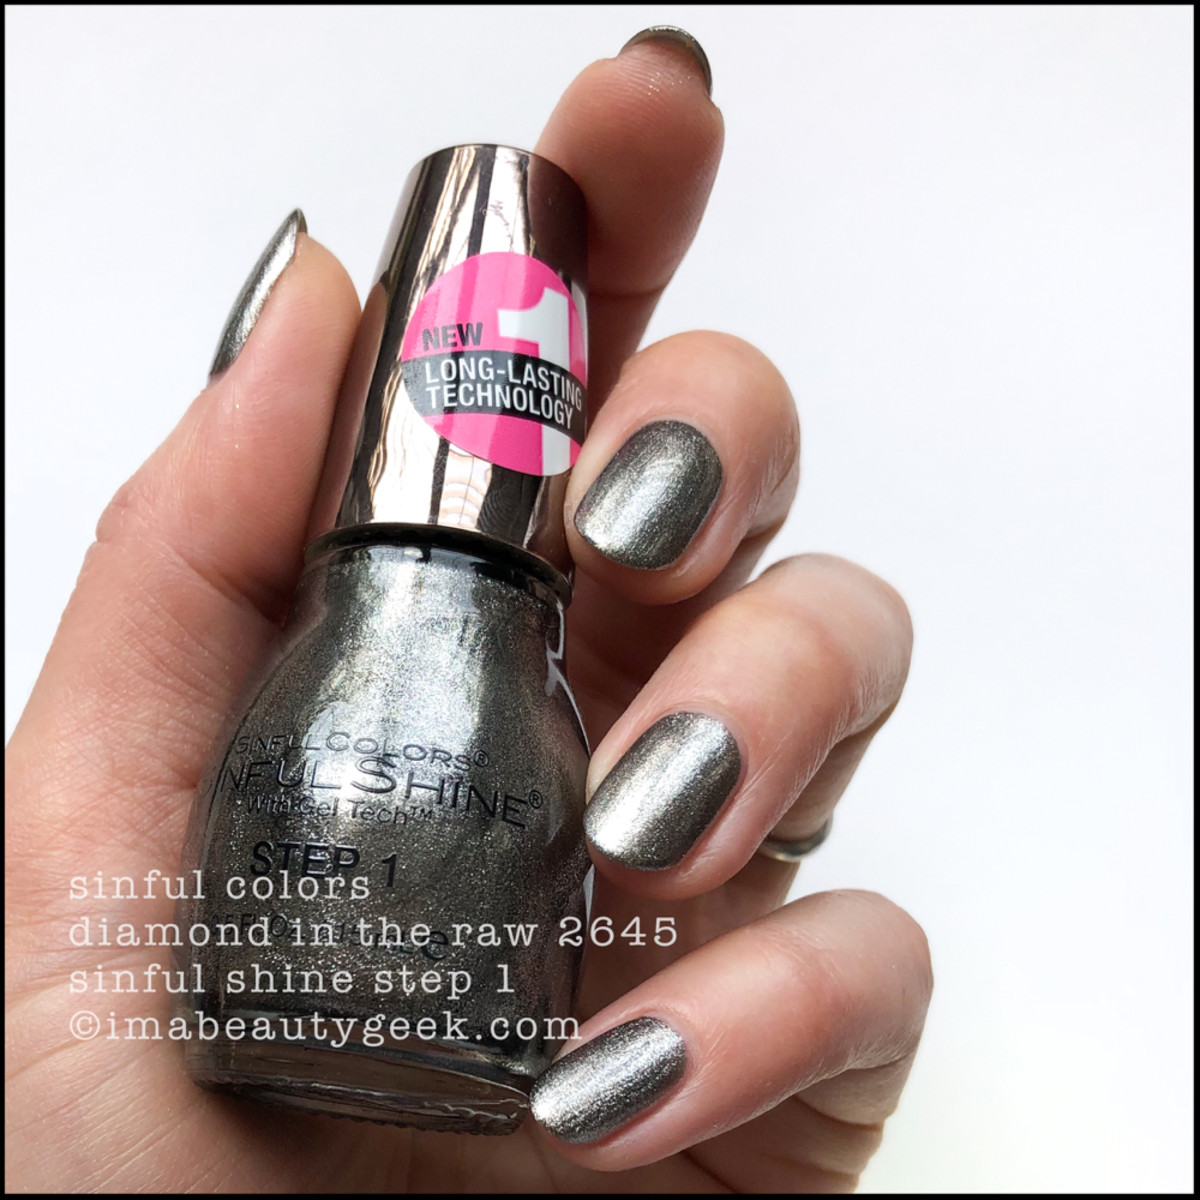 Sinful Colors Diamond in the Raw - Sinful Colors Swatches Sinful Shine 2019